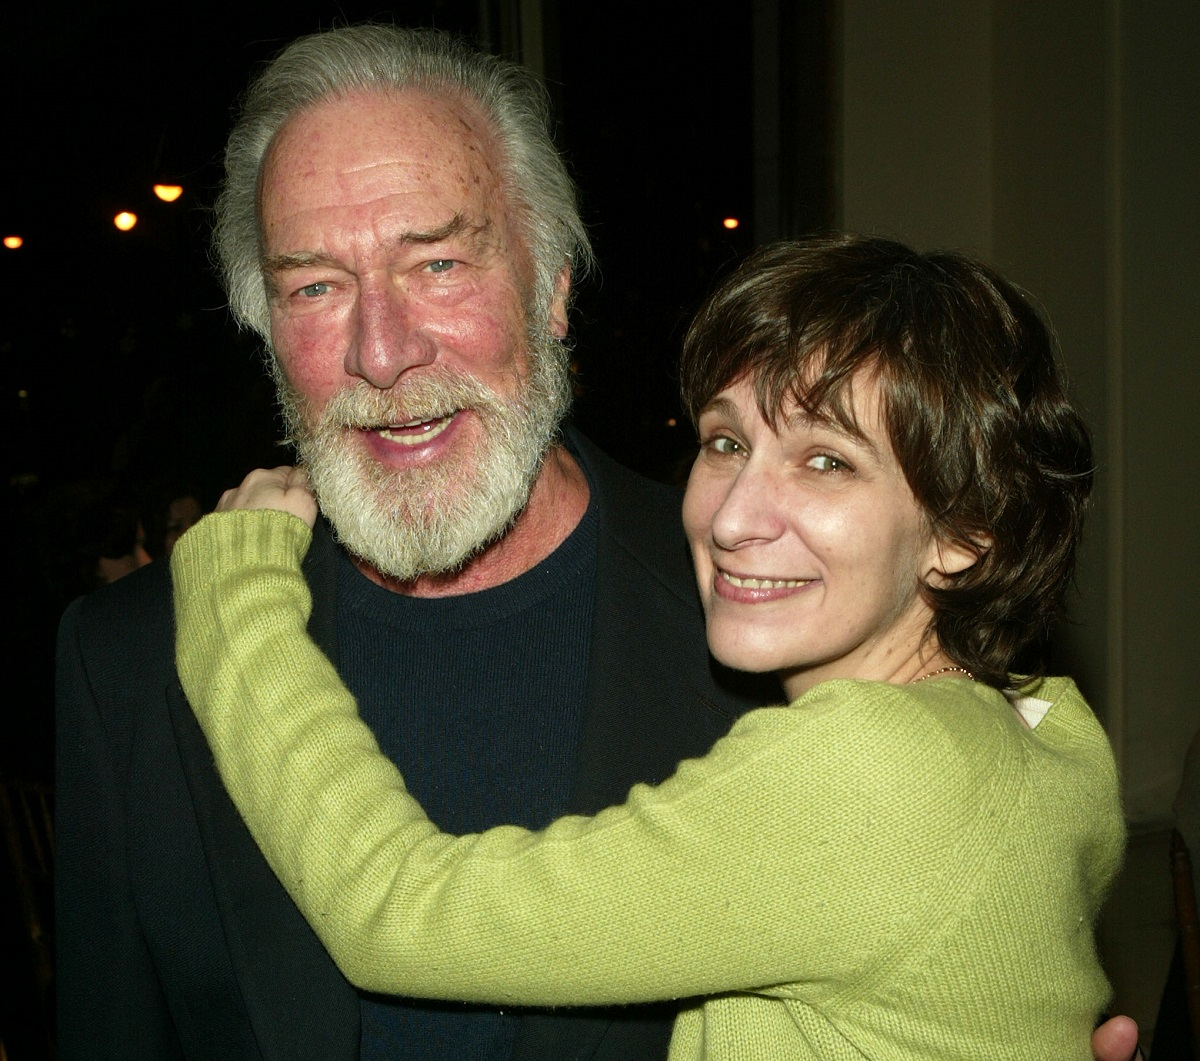 (L-R): Christopher Plummer and daughter Amanda Plummer attend the after party for Lincoln Centers opening night of 'King Lear' on March 4, 2004, in New York City.